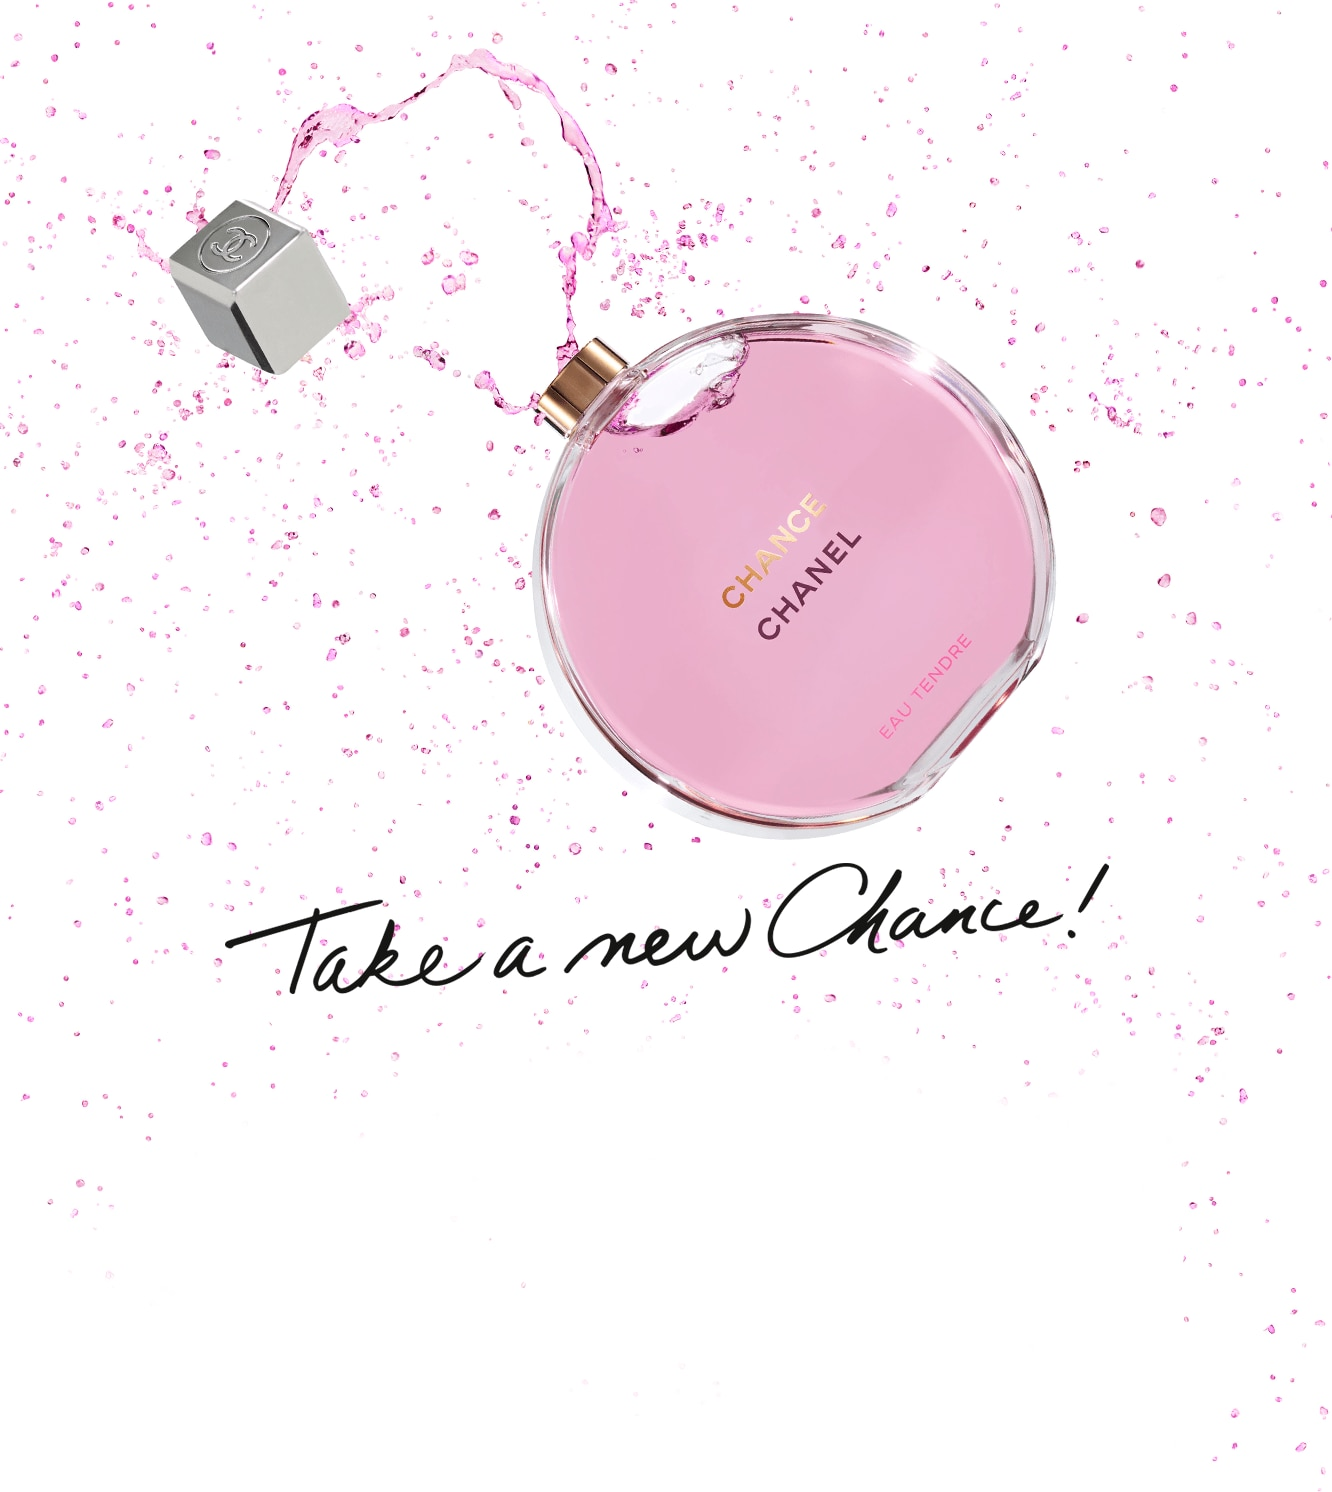 Chanel Take a new Chance